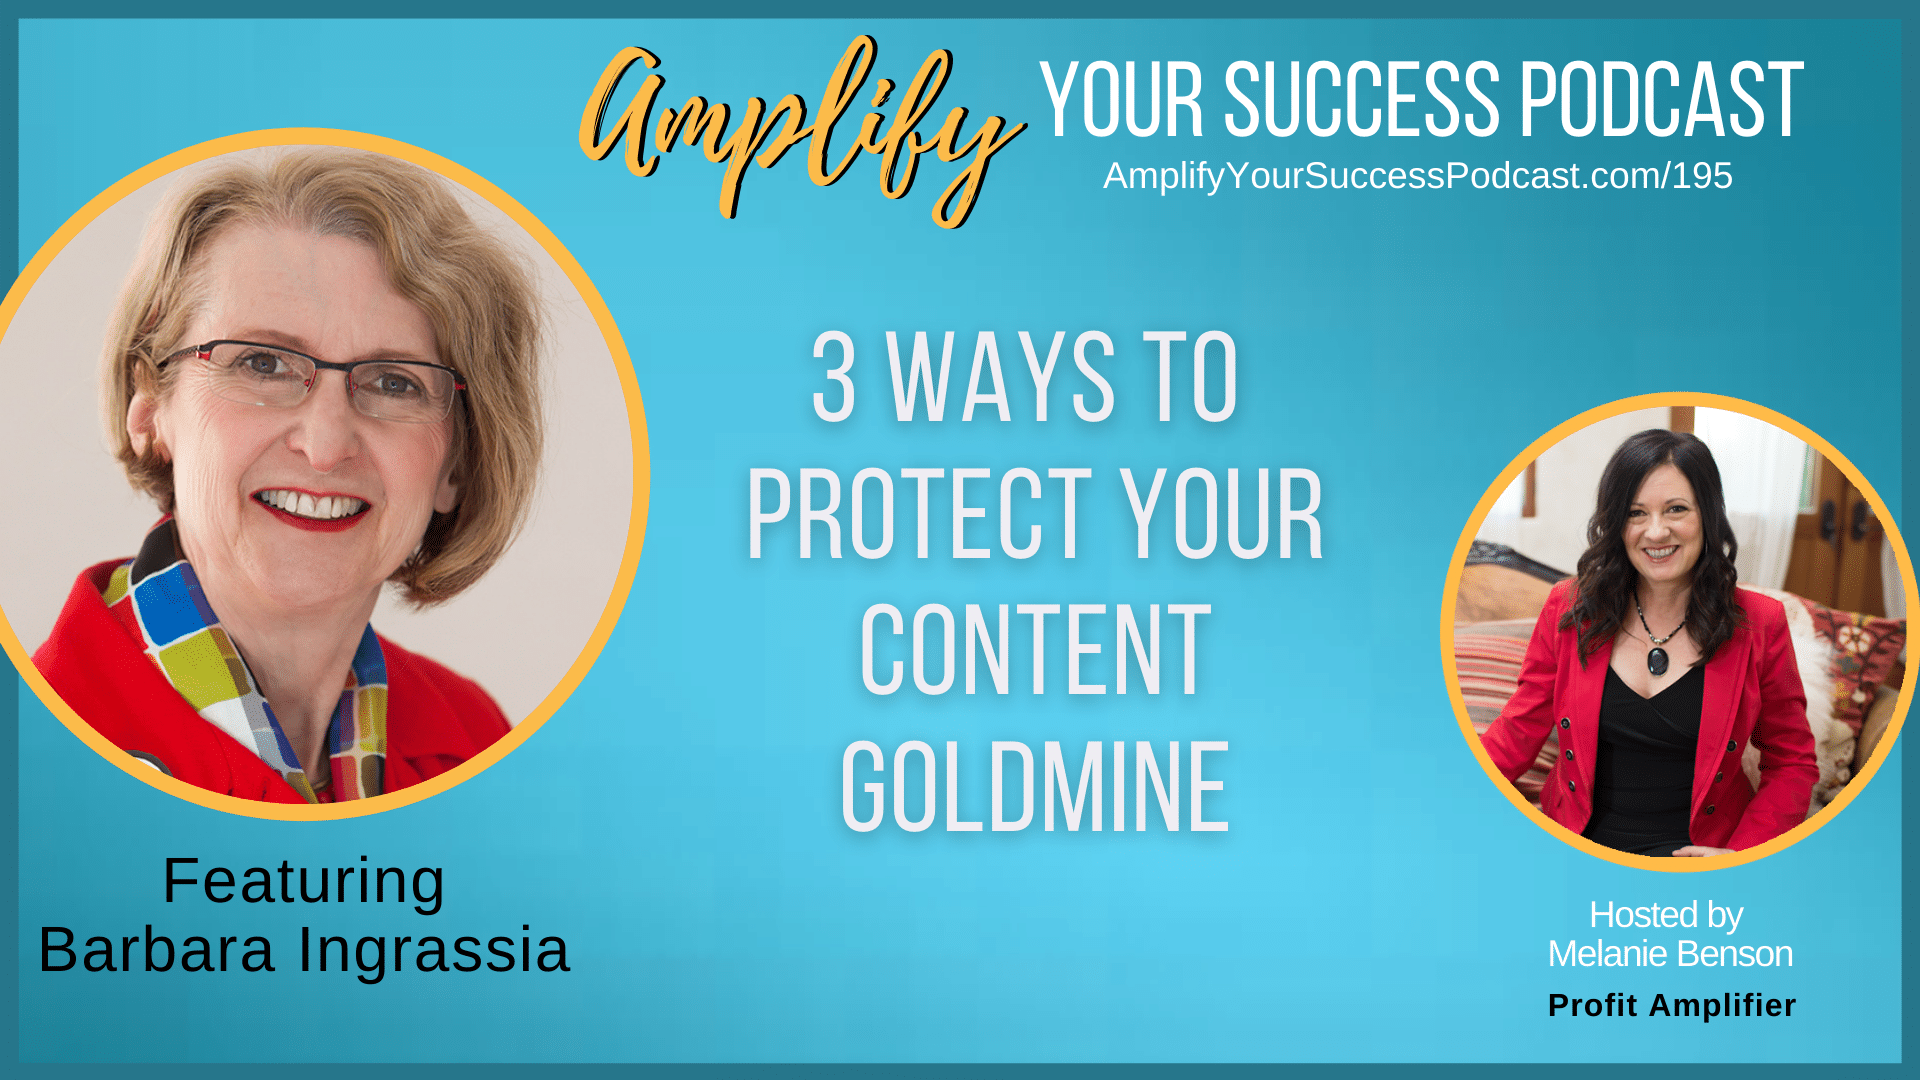 Discover the Ways to Protect Your Content Goldmine